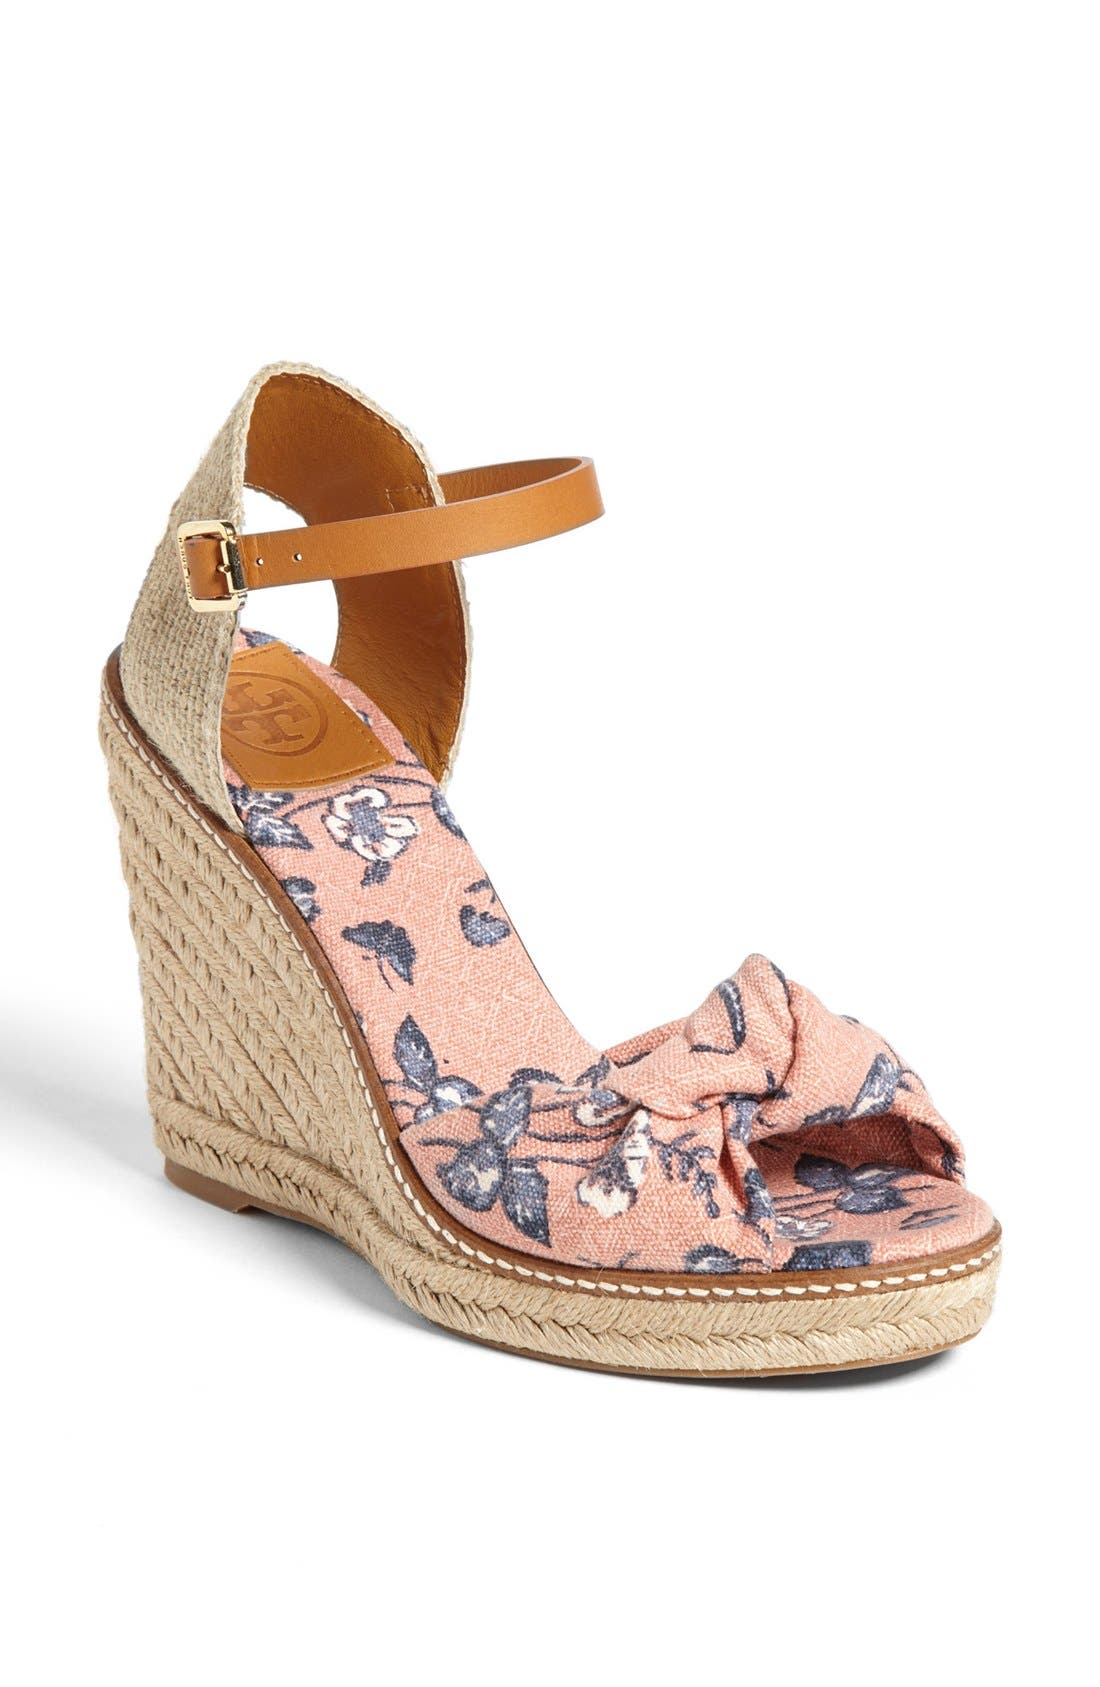 Alternate Image 1 Selected - Tory Burch 'Macy' Wedge Espadrille (Nordstrom Exclusive)